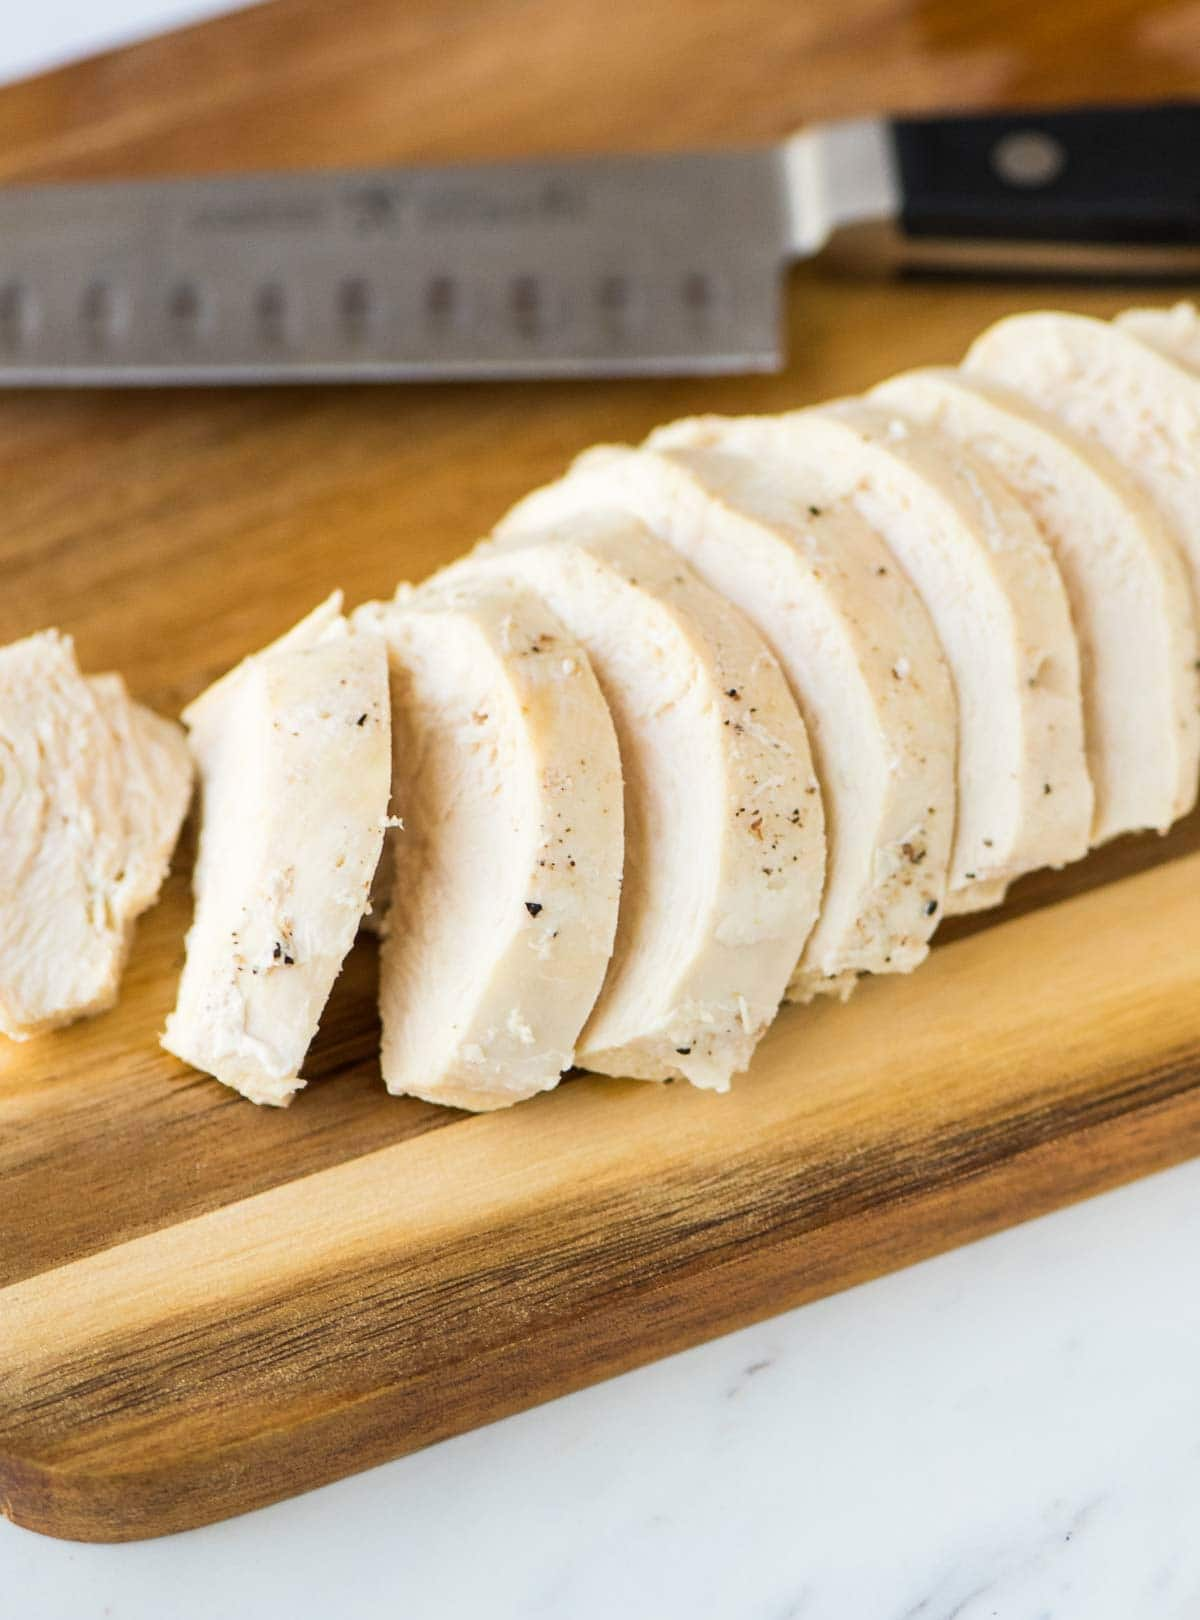 Use this method for how to cook shredded chicken anytime a recipe calls for cooked chicken or shredded chicken. @wellplated